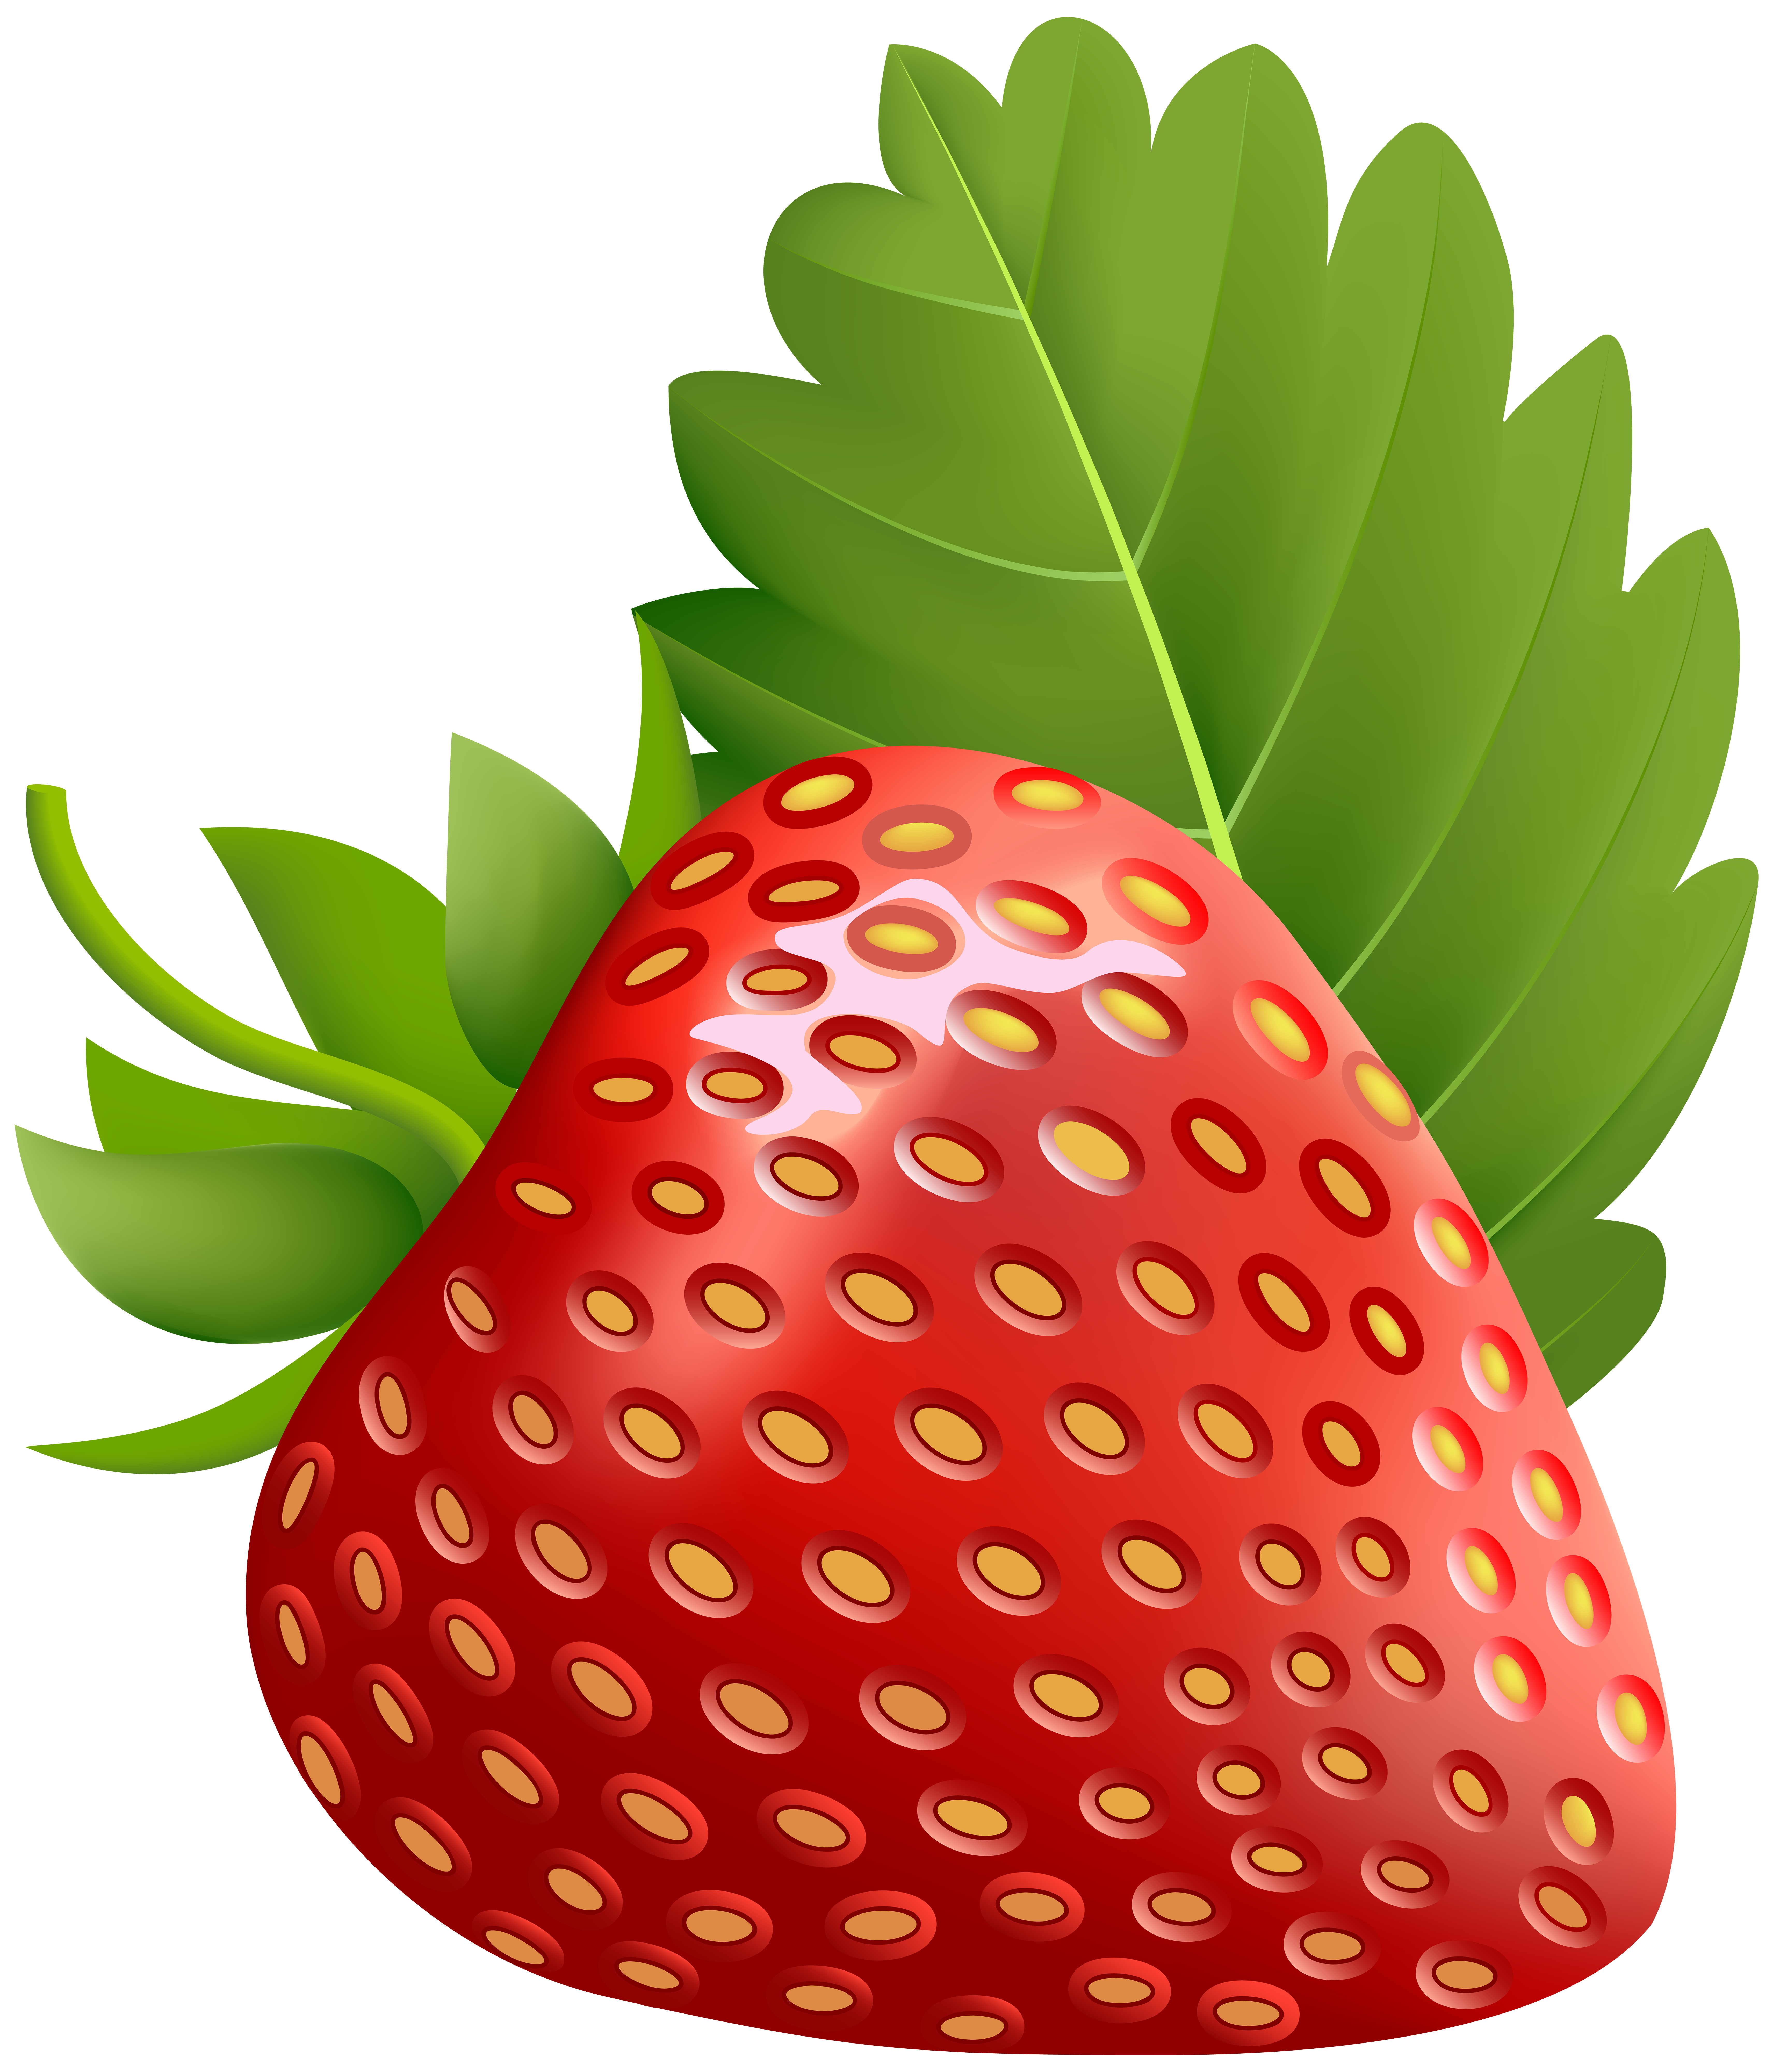 Strawberries clipart banner. Strawberry png transparent image